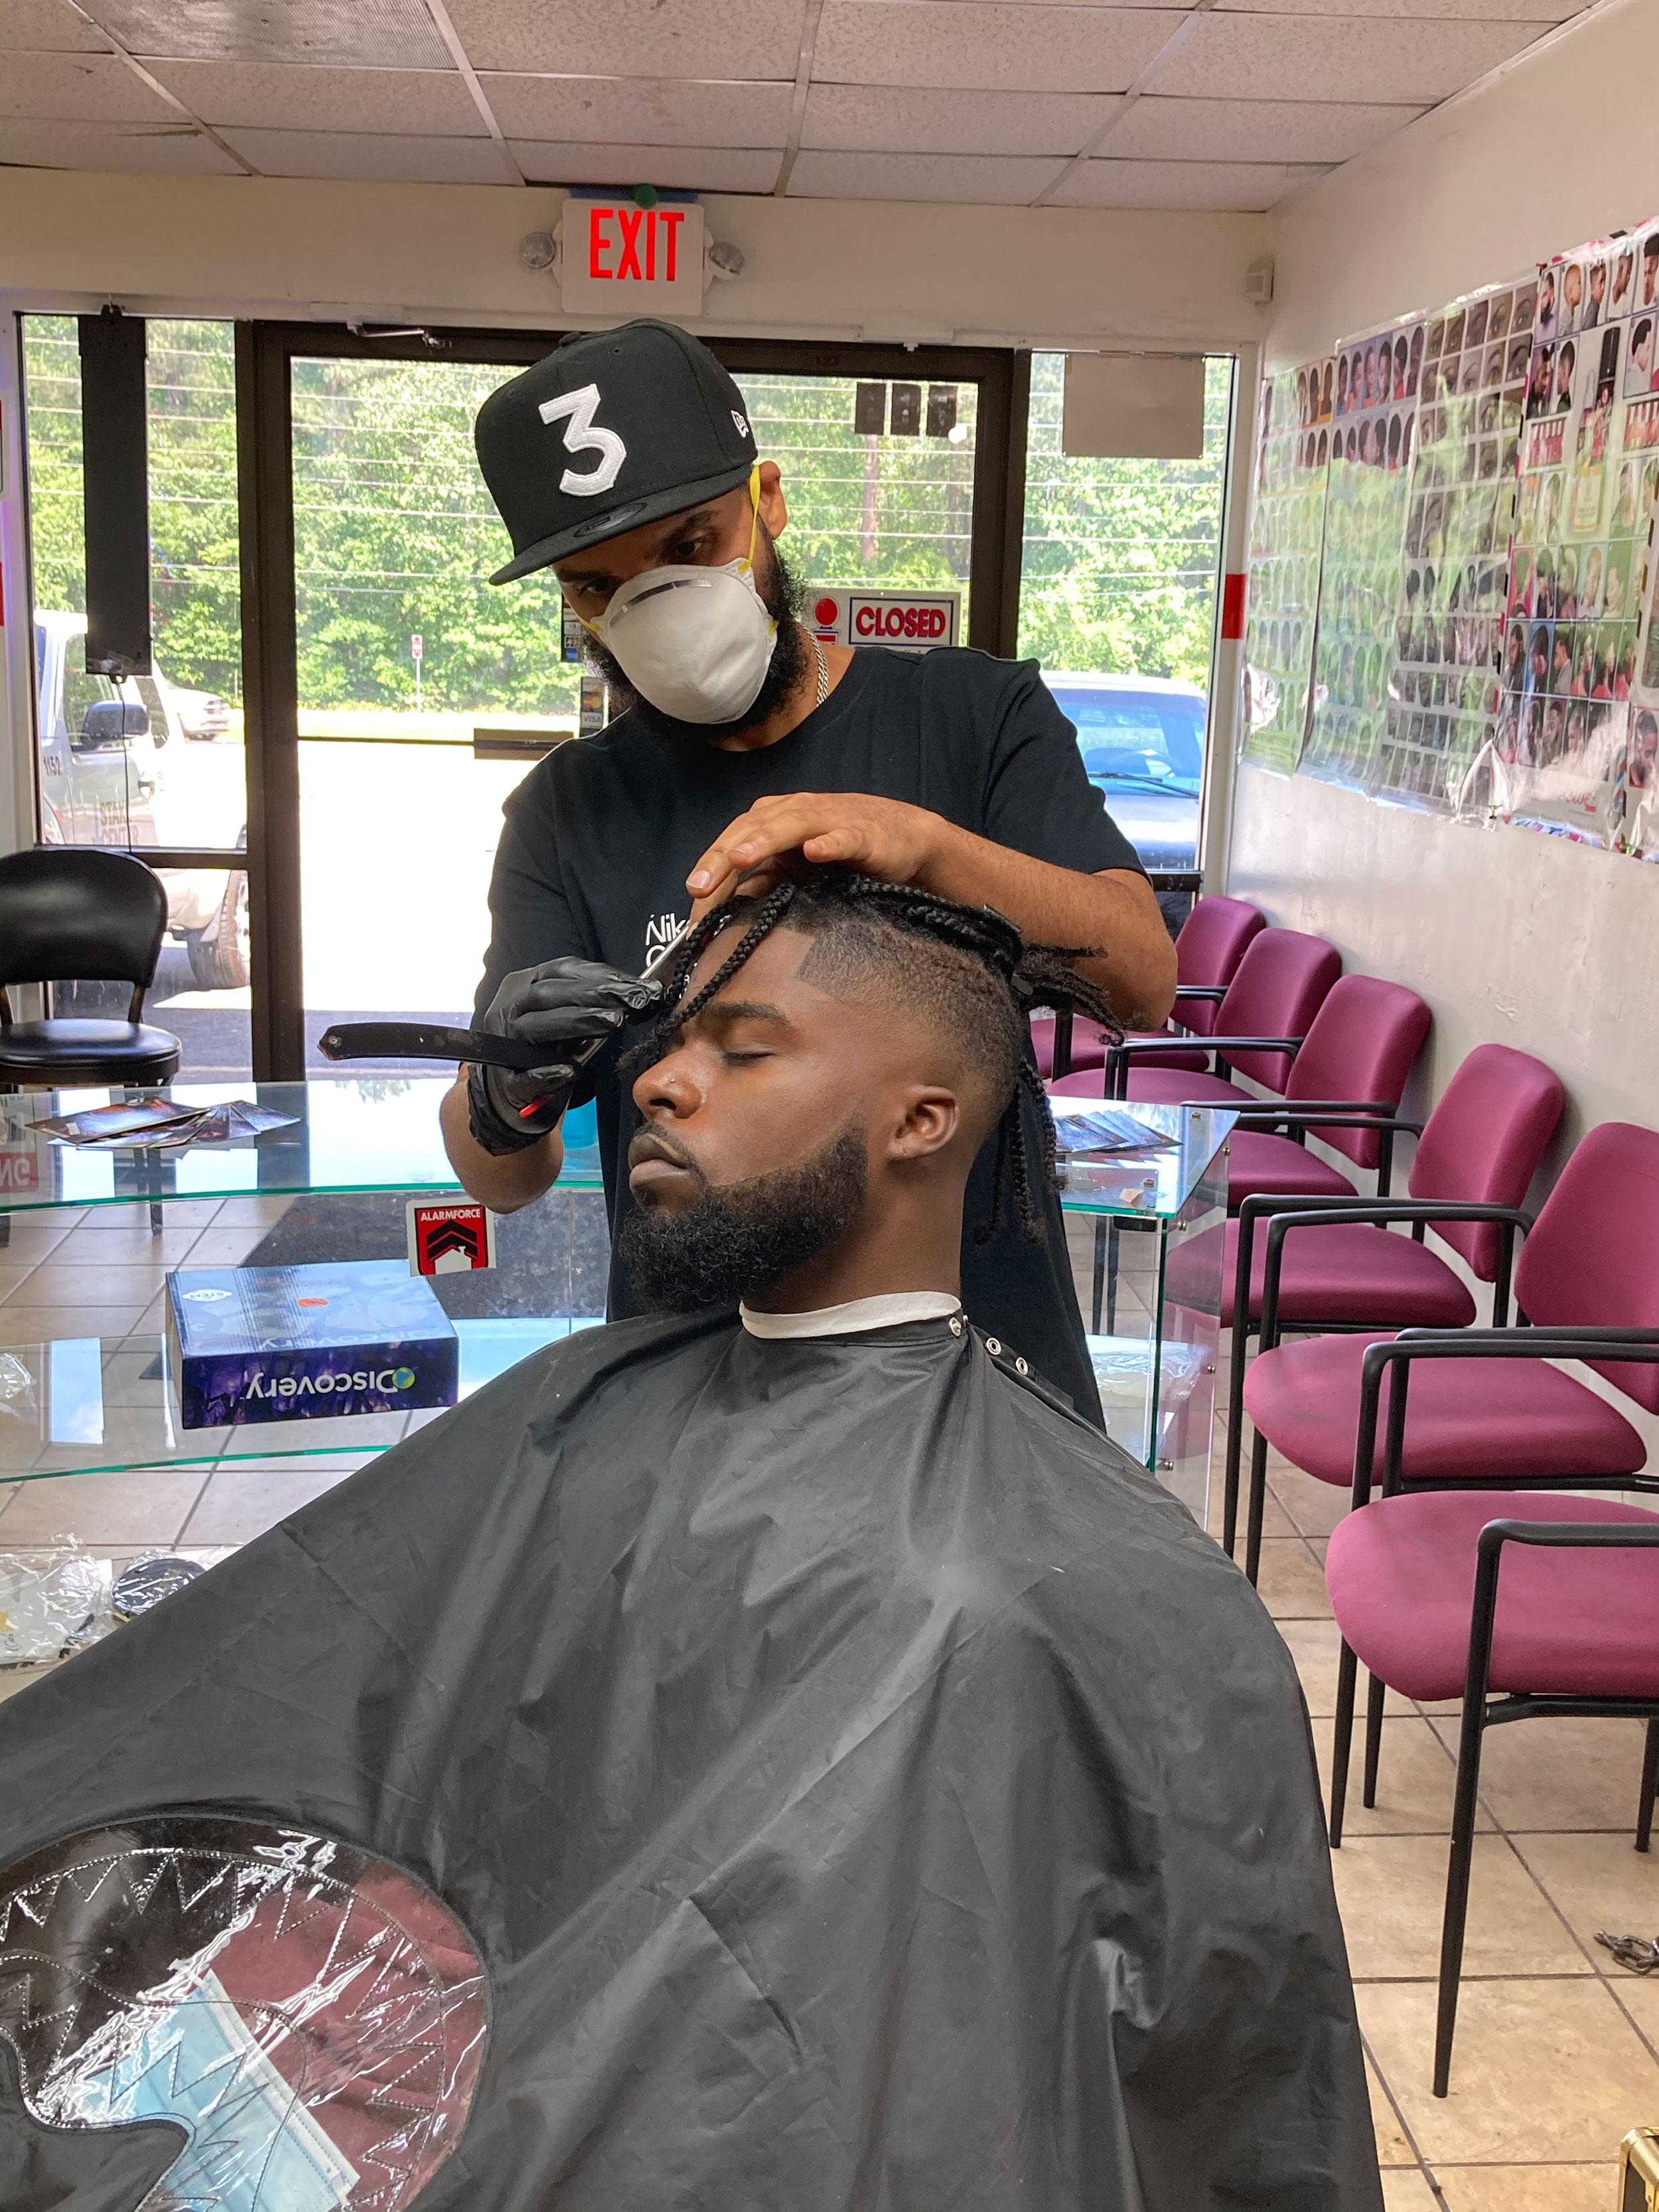 Haircut Places Near Me Open Now : haircut, places, Coronavirus, Transforming, Salons, Barbershops, Style